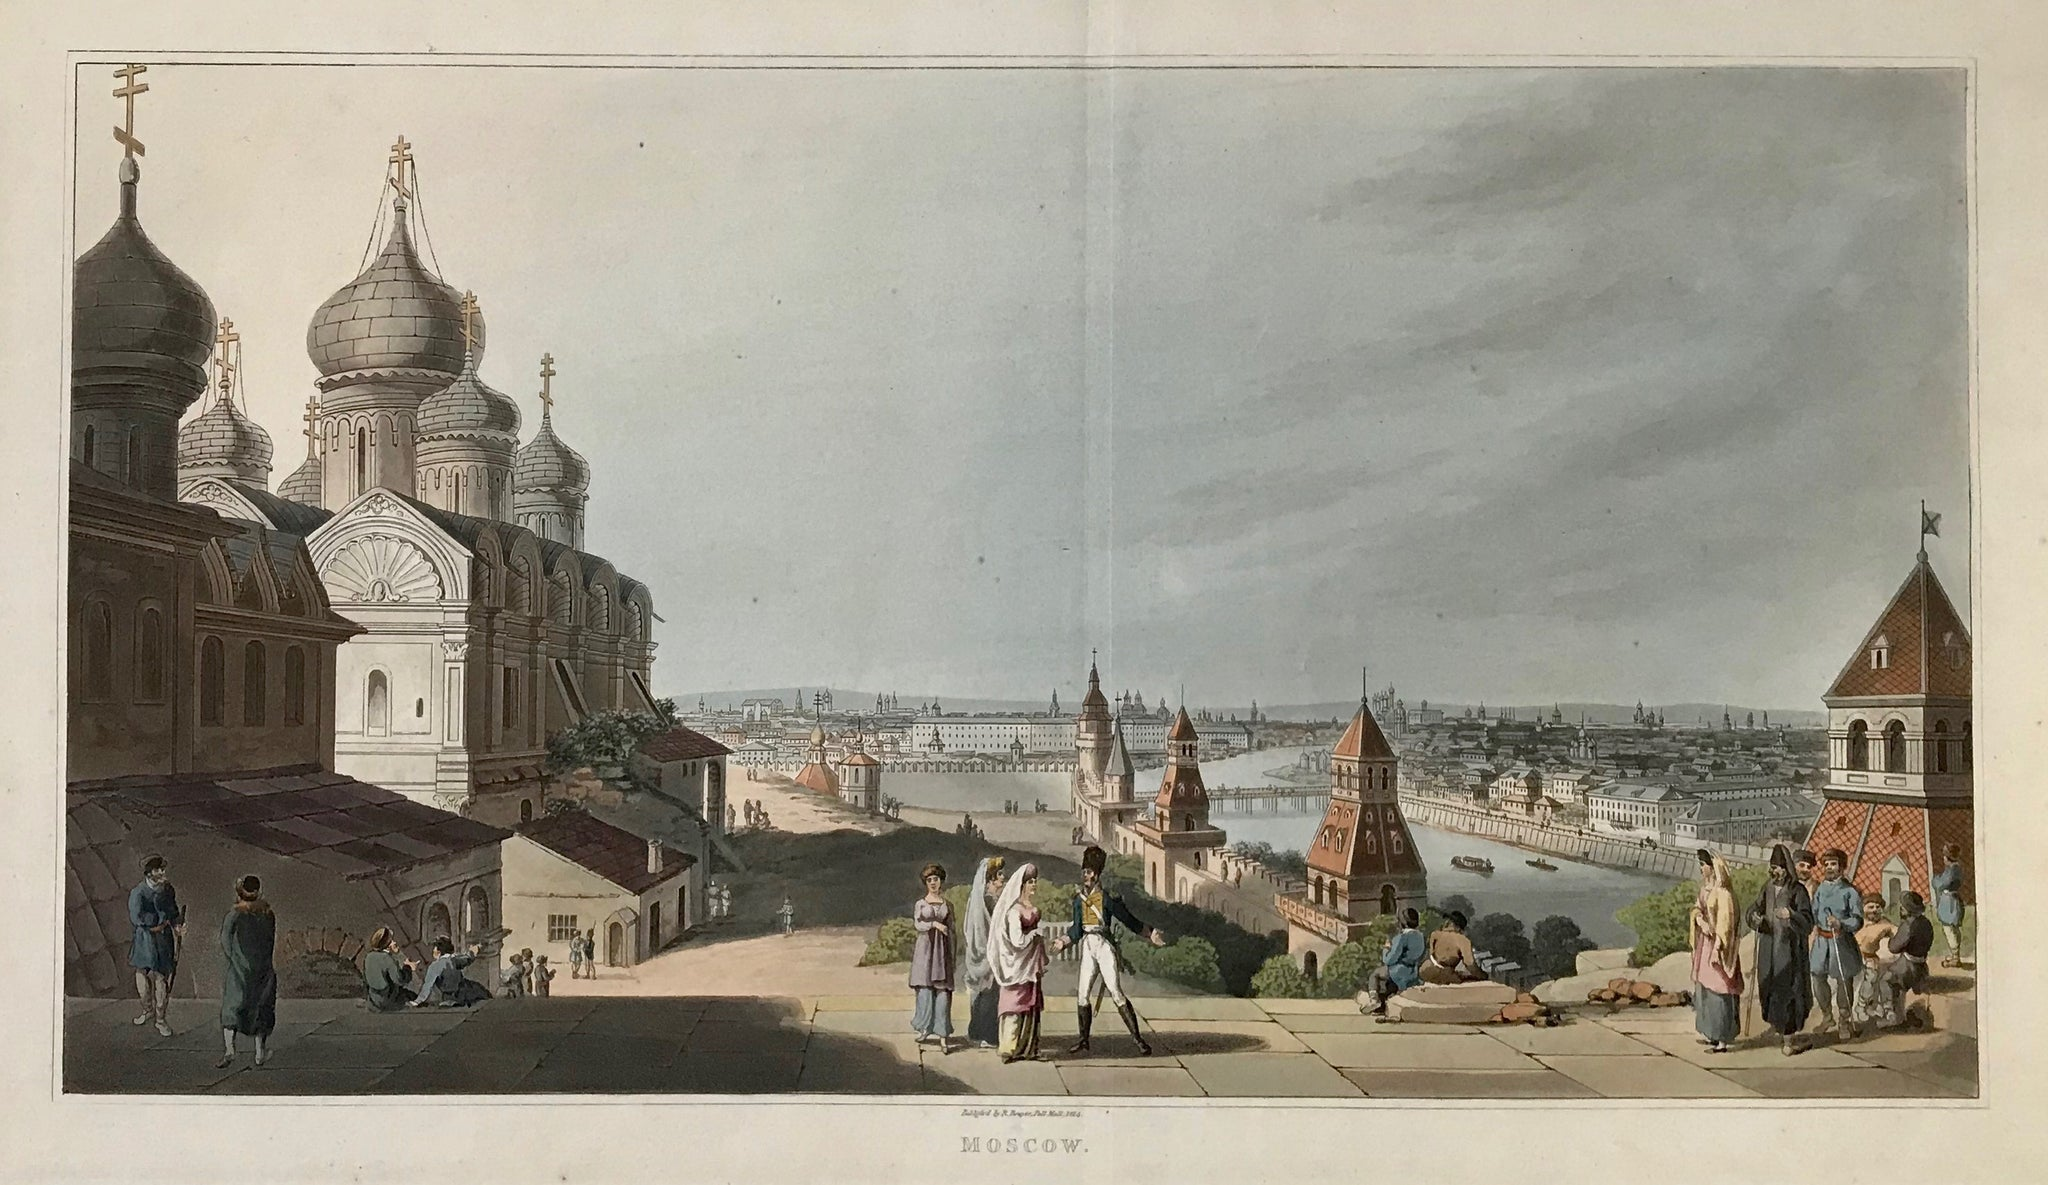 """Moscow"".  Type of print: Aquatint  Color: Finely executed original hand coloring  Publisher: Robert Bowyer (1758-1834)  Where / When: London, aquatints is dated 1814. Publication: 1816  Published in: ""An illustrated Record of important Events during the years 1812-1815""  A very attractive, beautifully hand-colored panoramic view of Moscow. The Kremlin left foreground."